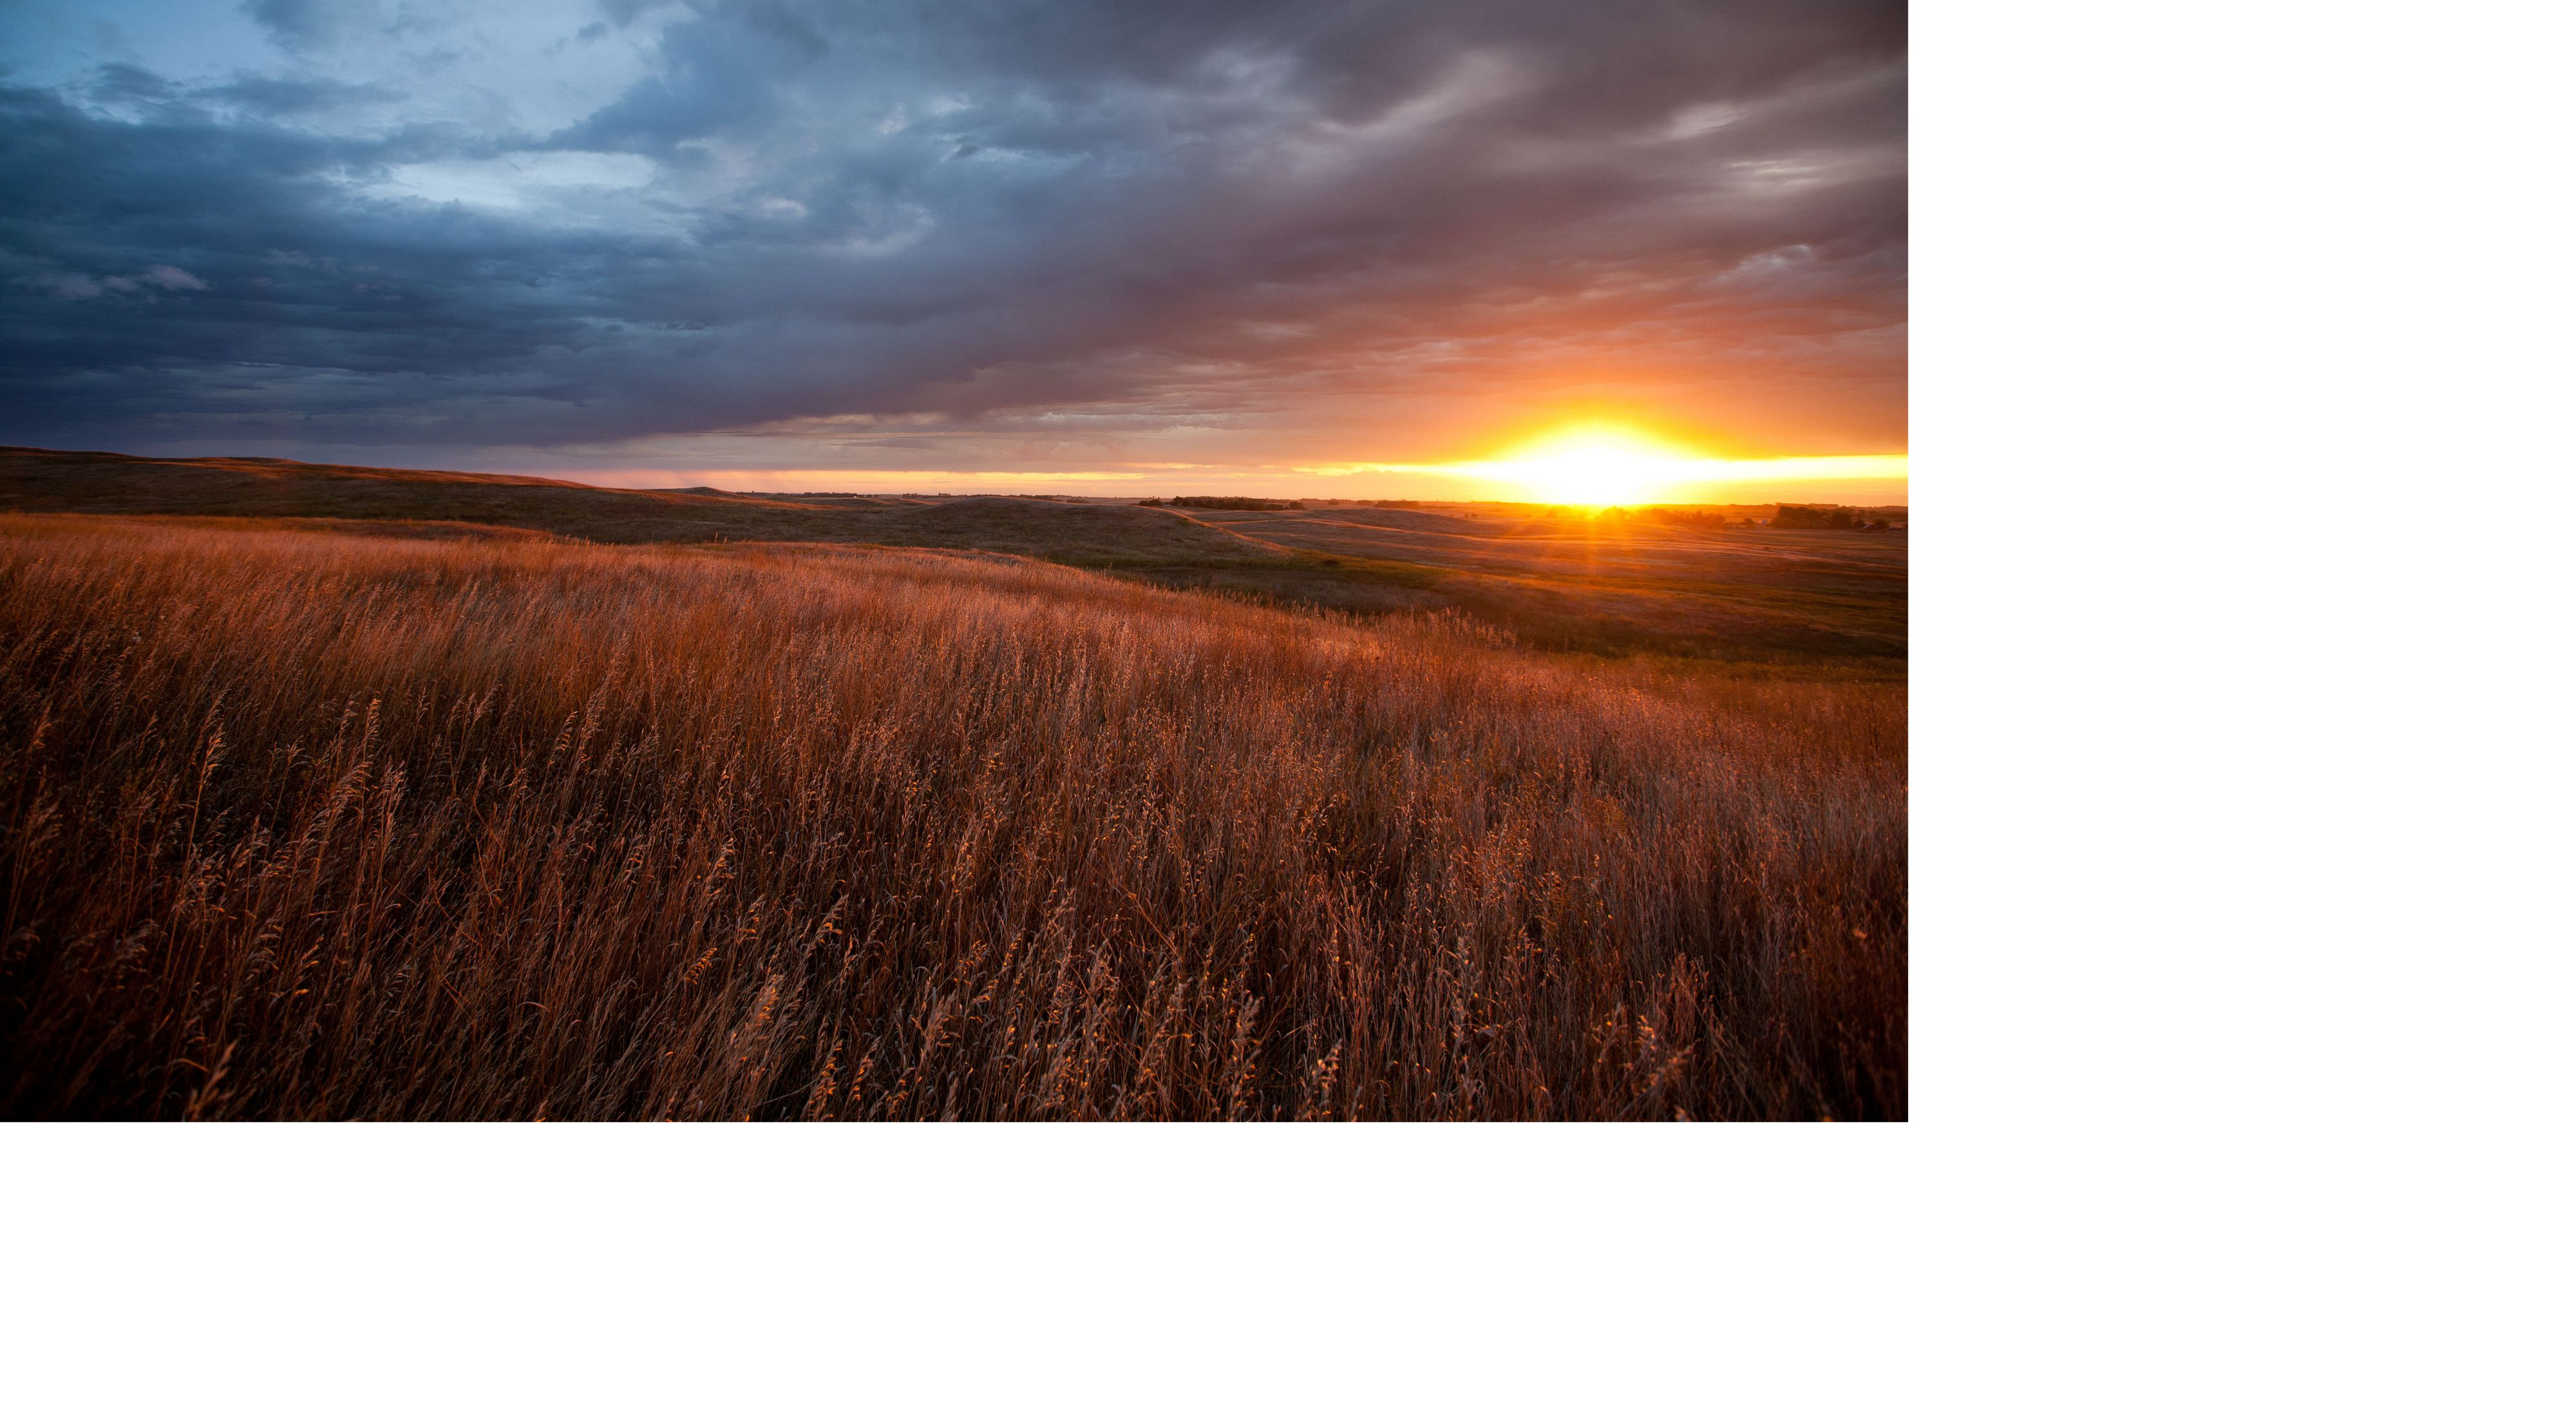 Bluebell Ranch is a privately-owned and managed property in Deuel County within the Prairie Coteau grasslands.